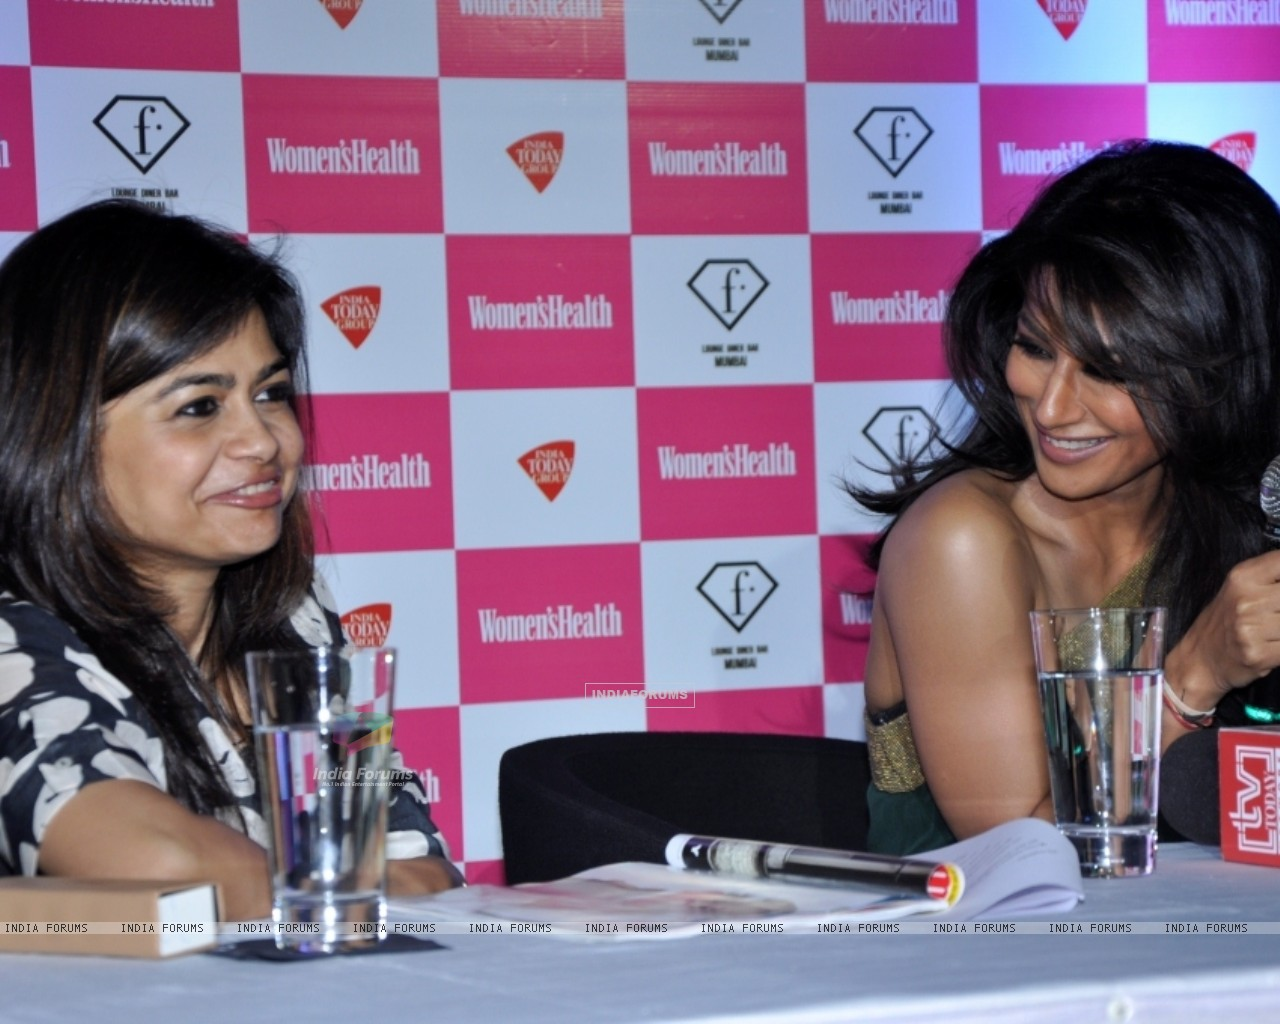 Bollywood actress Chitrangada Singh launched Women's Health magazine in a press conference in Mumbai. (230187) size:1280x1024